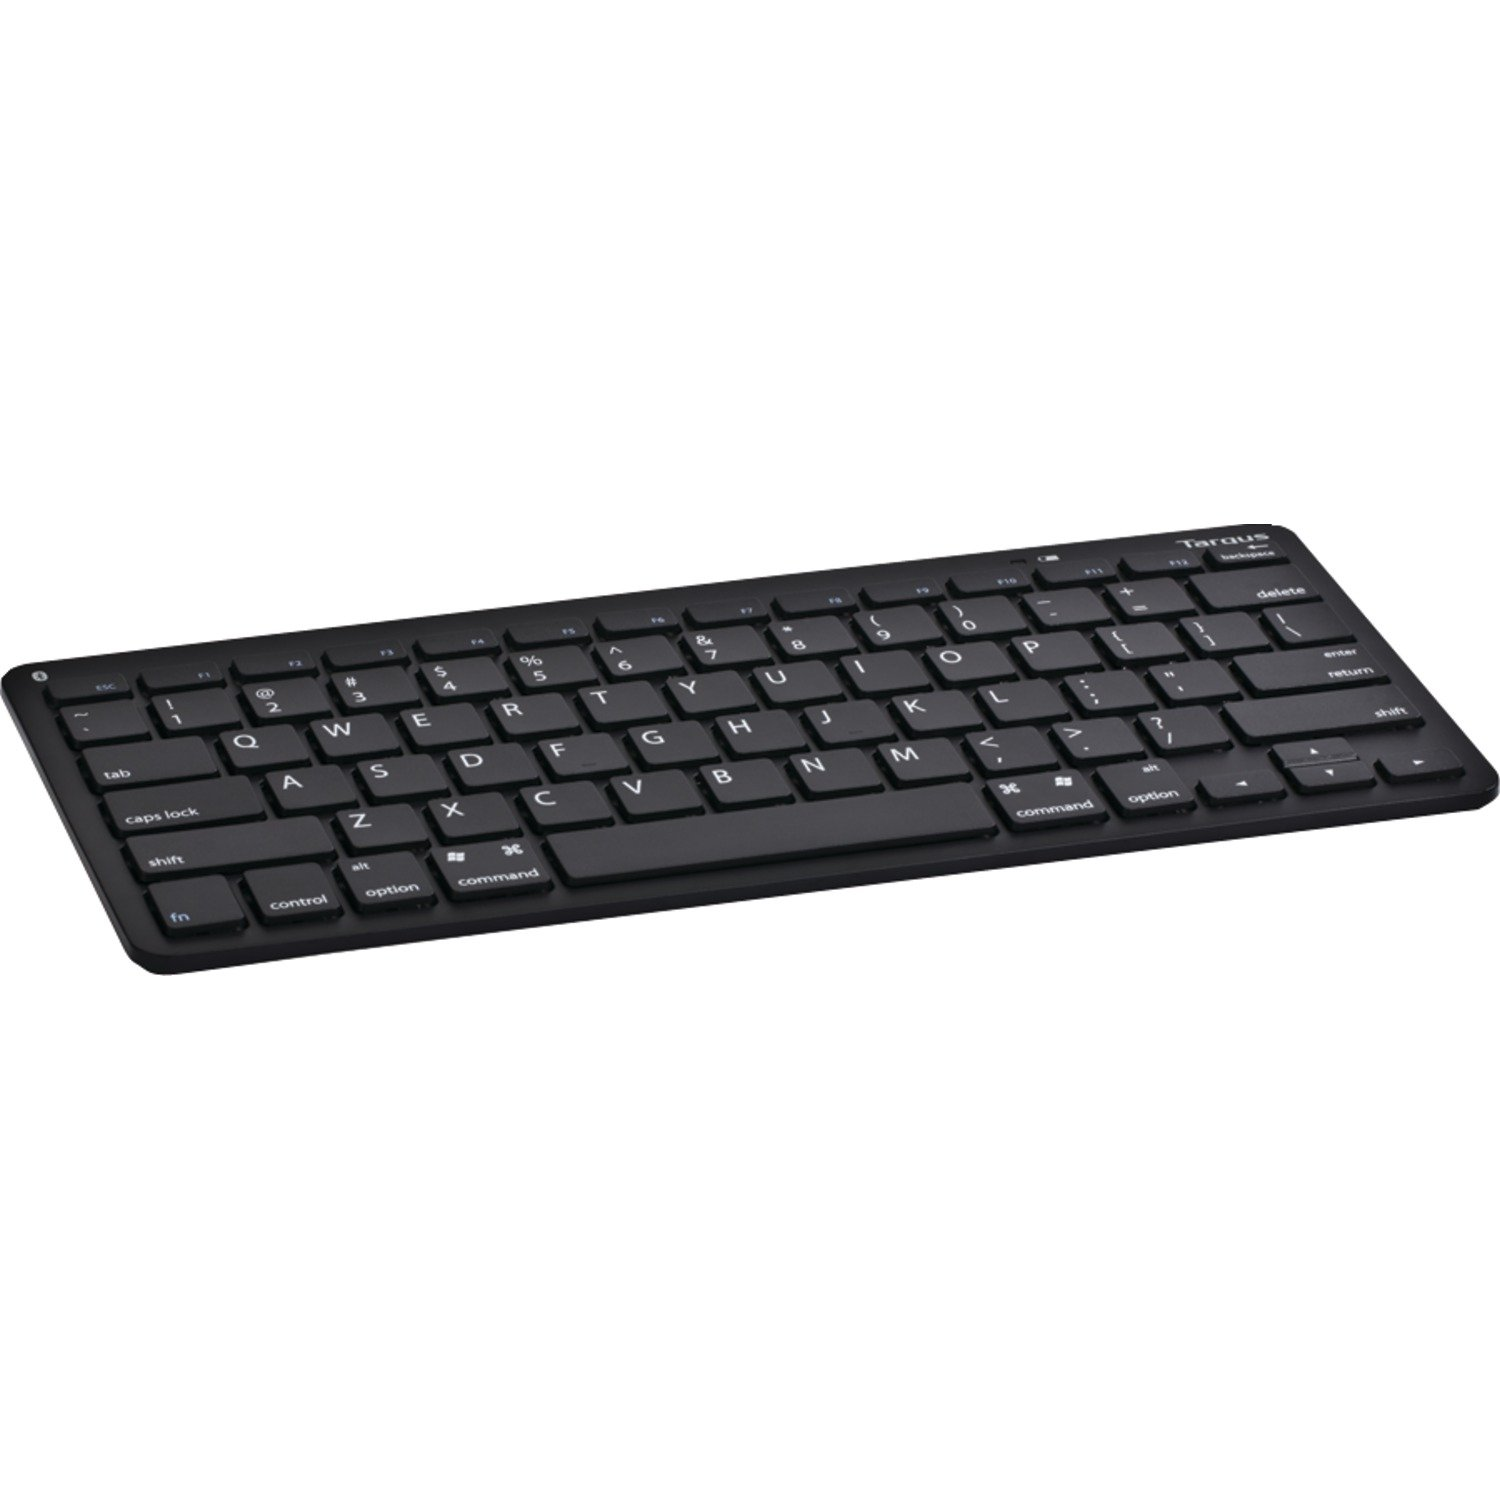 Targus Bluetooth Wireless Keyboard for Tablets – iPad 2, the New iPad, Motorola Xoom, Samsung Galaxy AKB33US (Black) $18.39